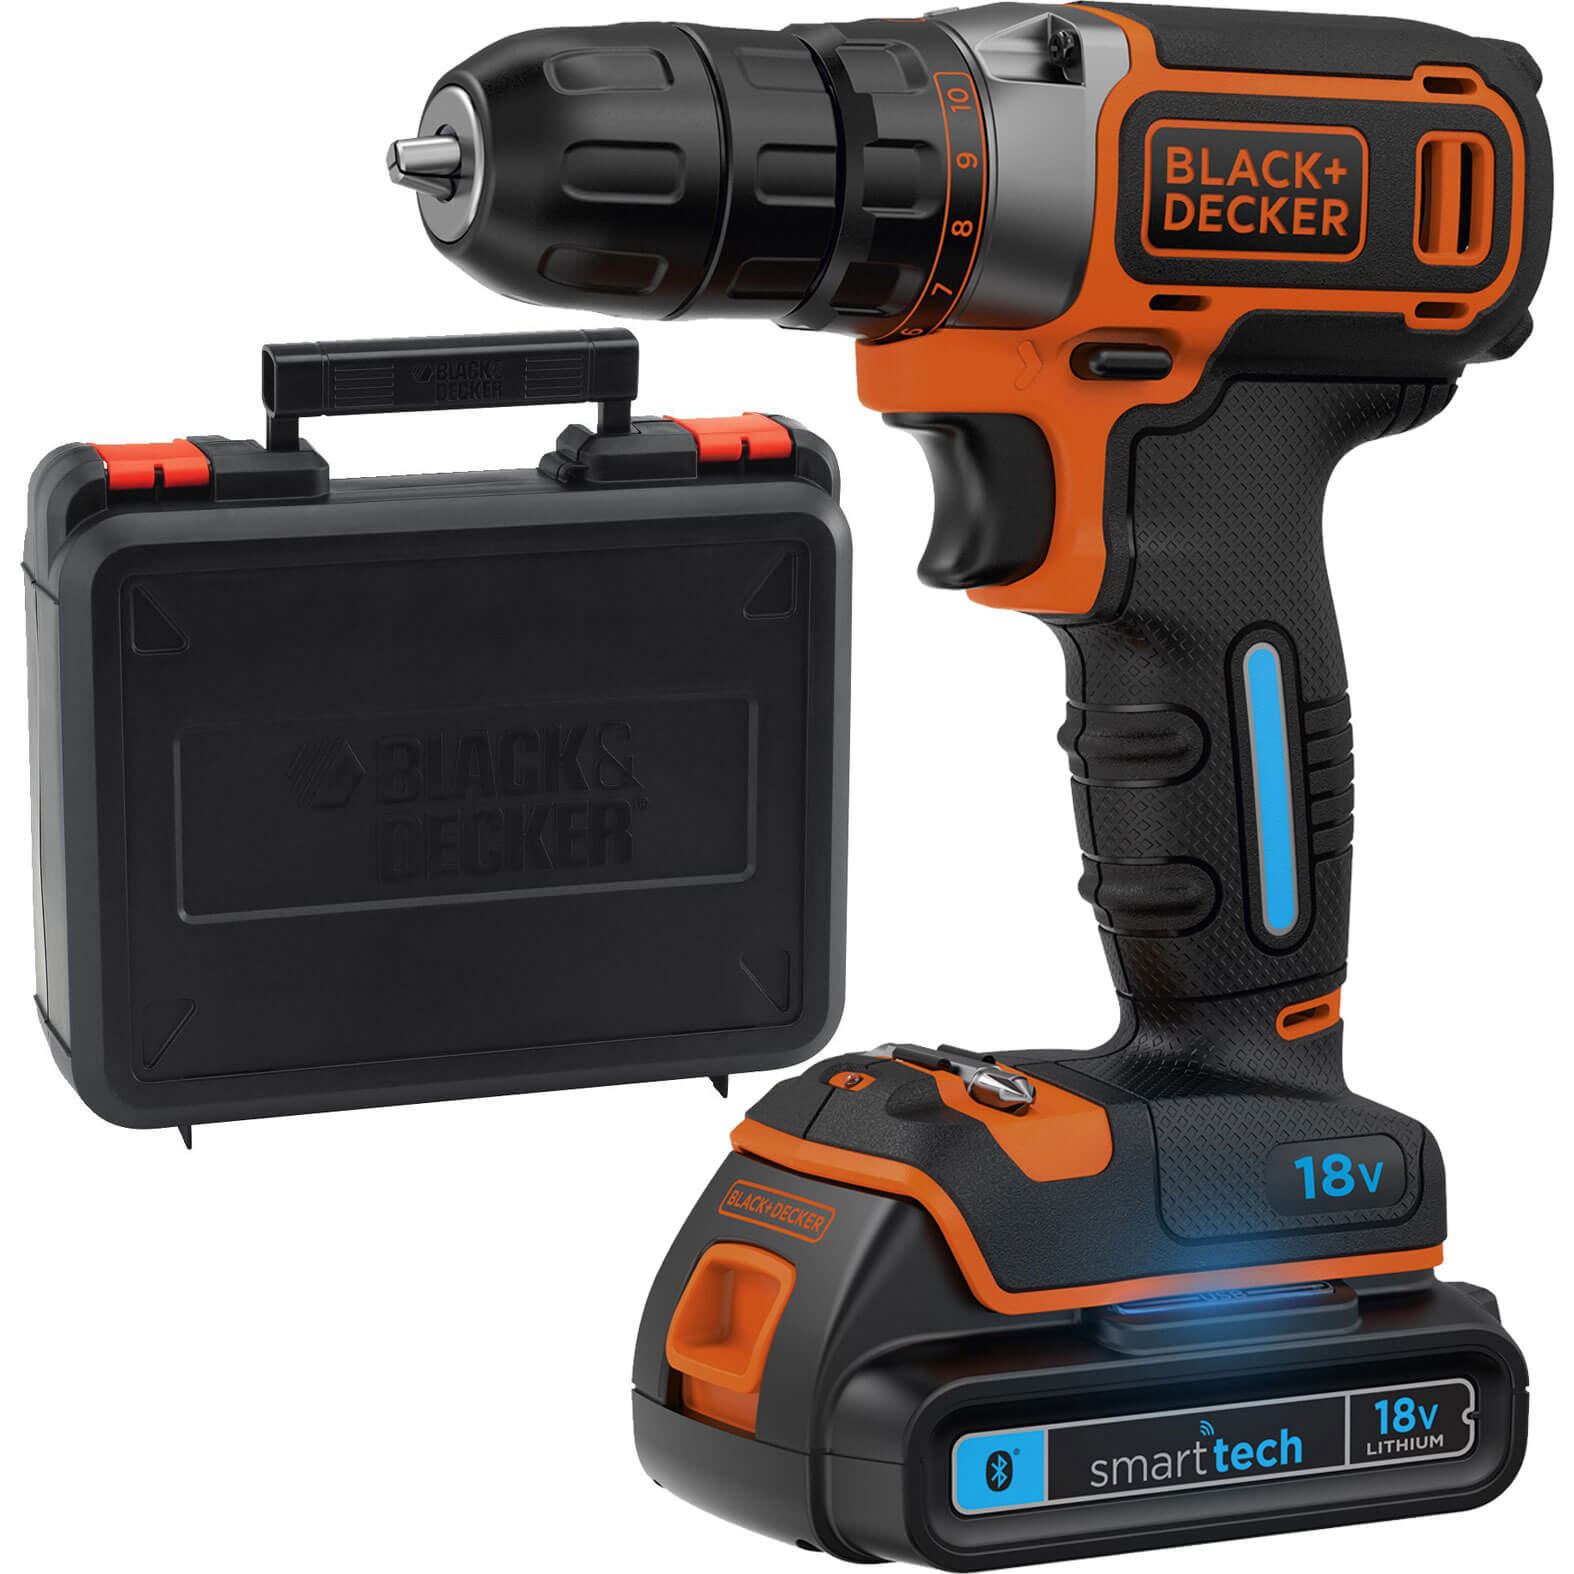 Black & Decker BDCDC18KST 18v Cordless Smart Tech Drill Driver 1 x 1.5ah Liion Charger Case